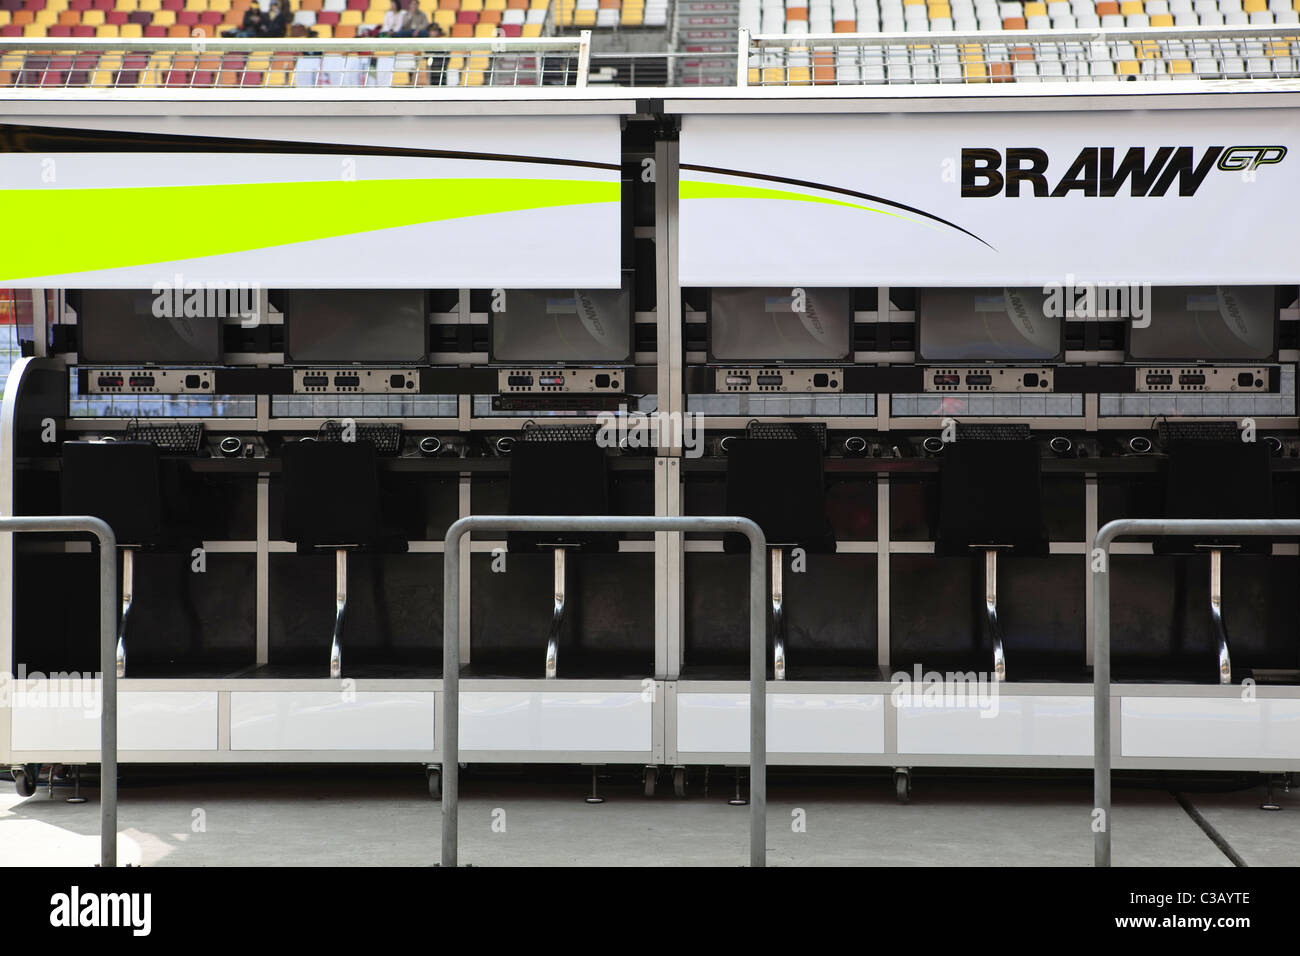 shanghai: formula one brawn gp booth - Stock Image